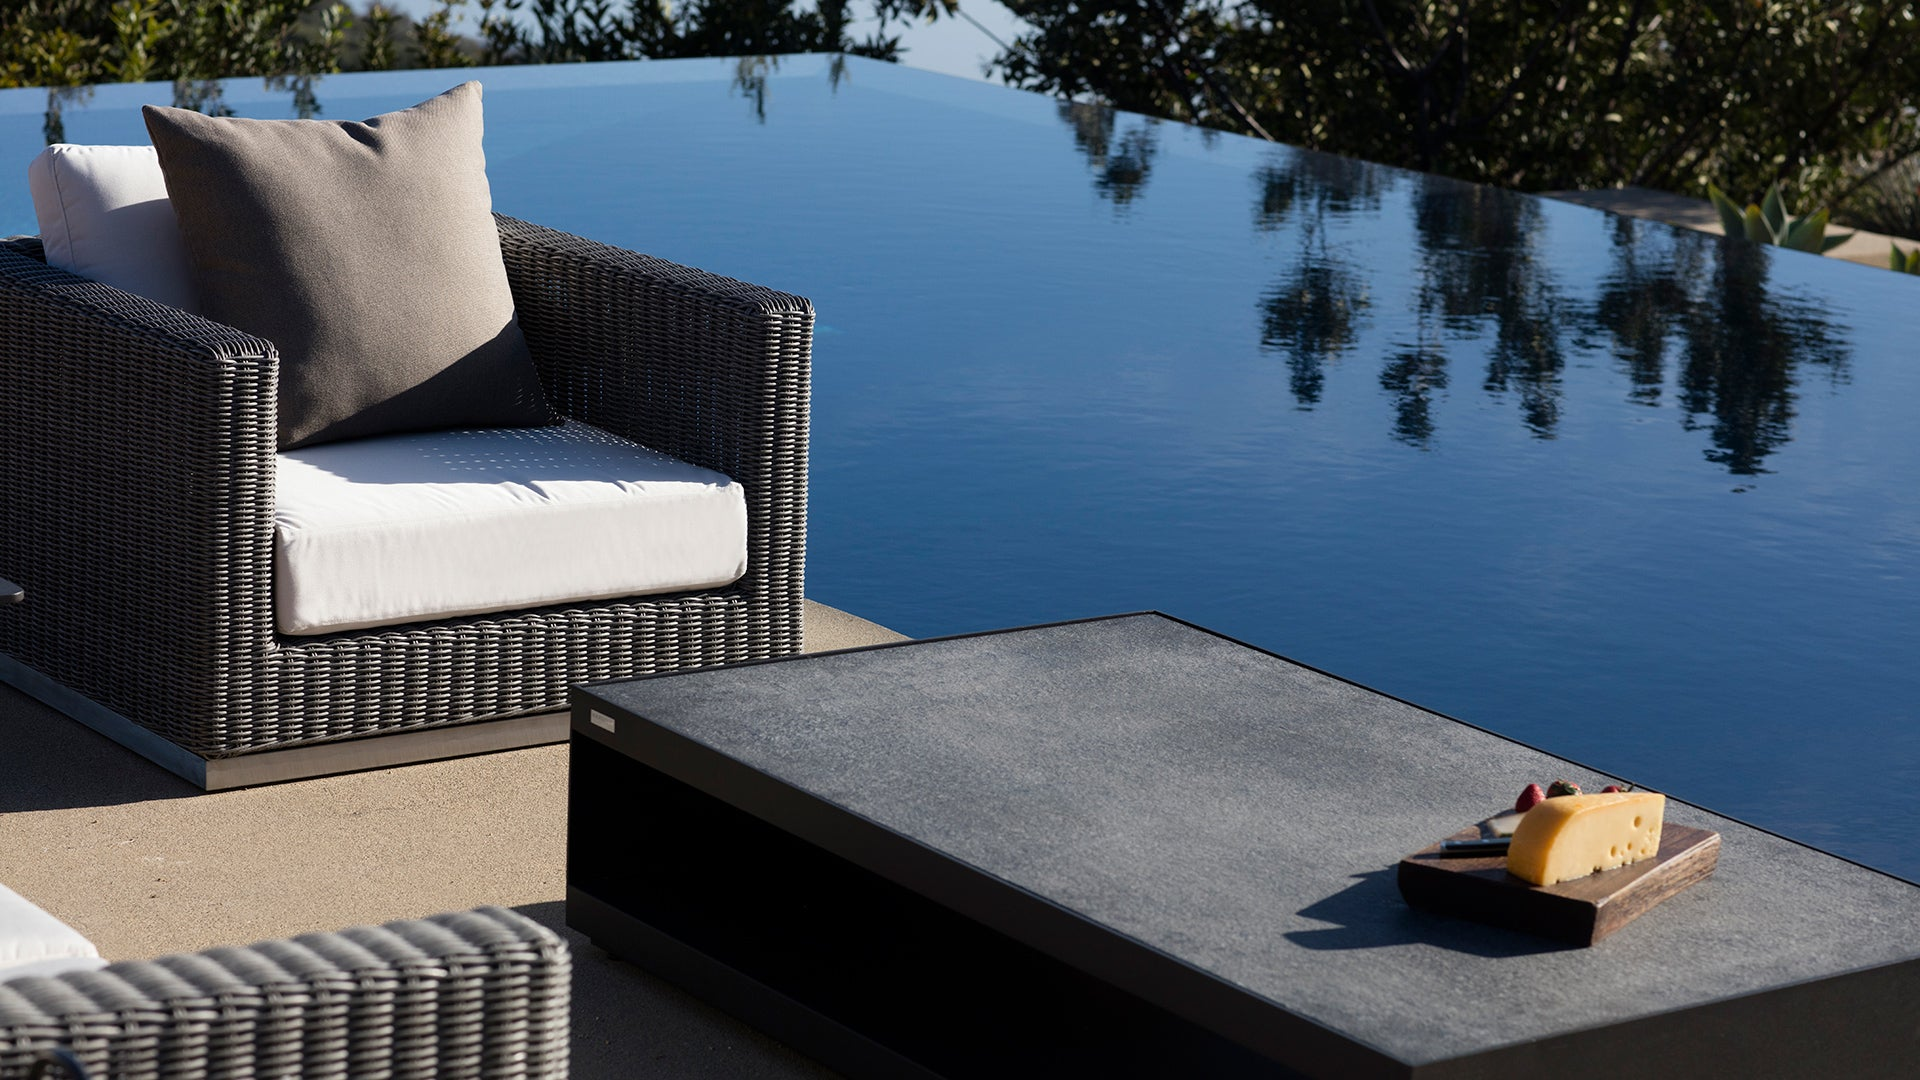 Online Outdoor Furniture, Patio, Weave, Teak, Firetables - LA, NY ... - Camp Cove Collection